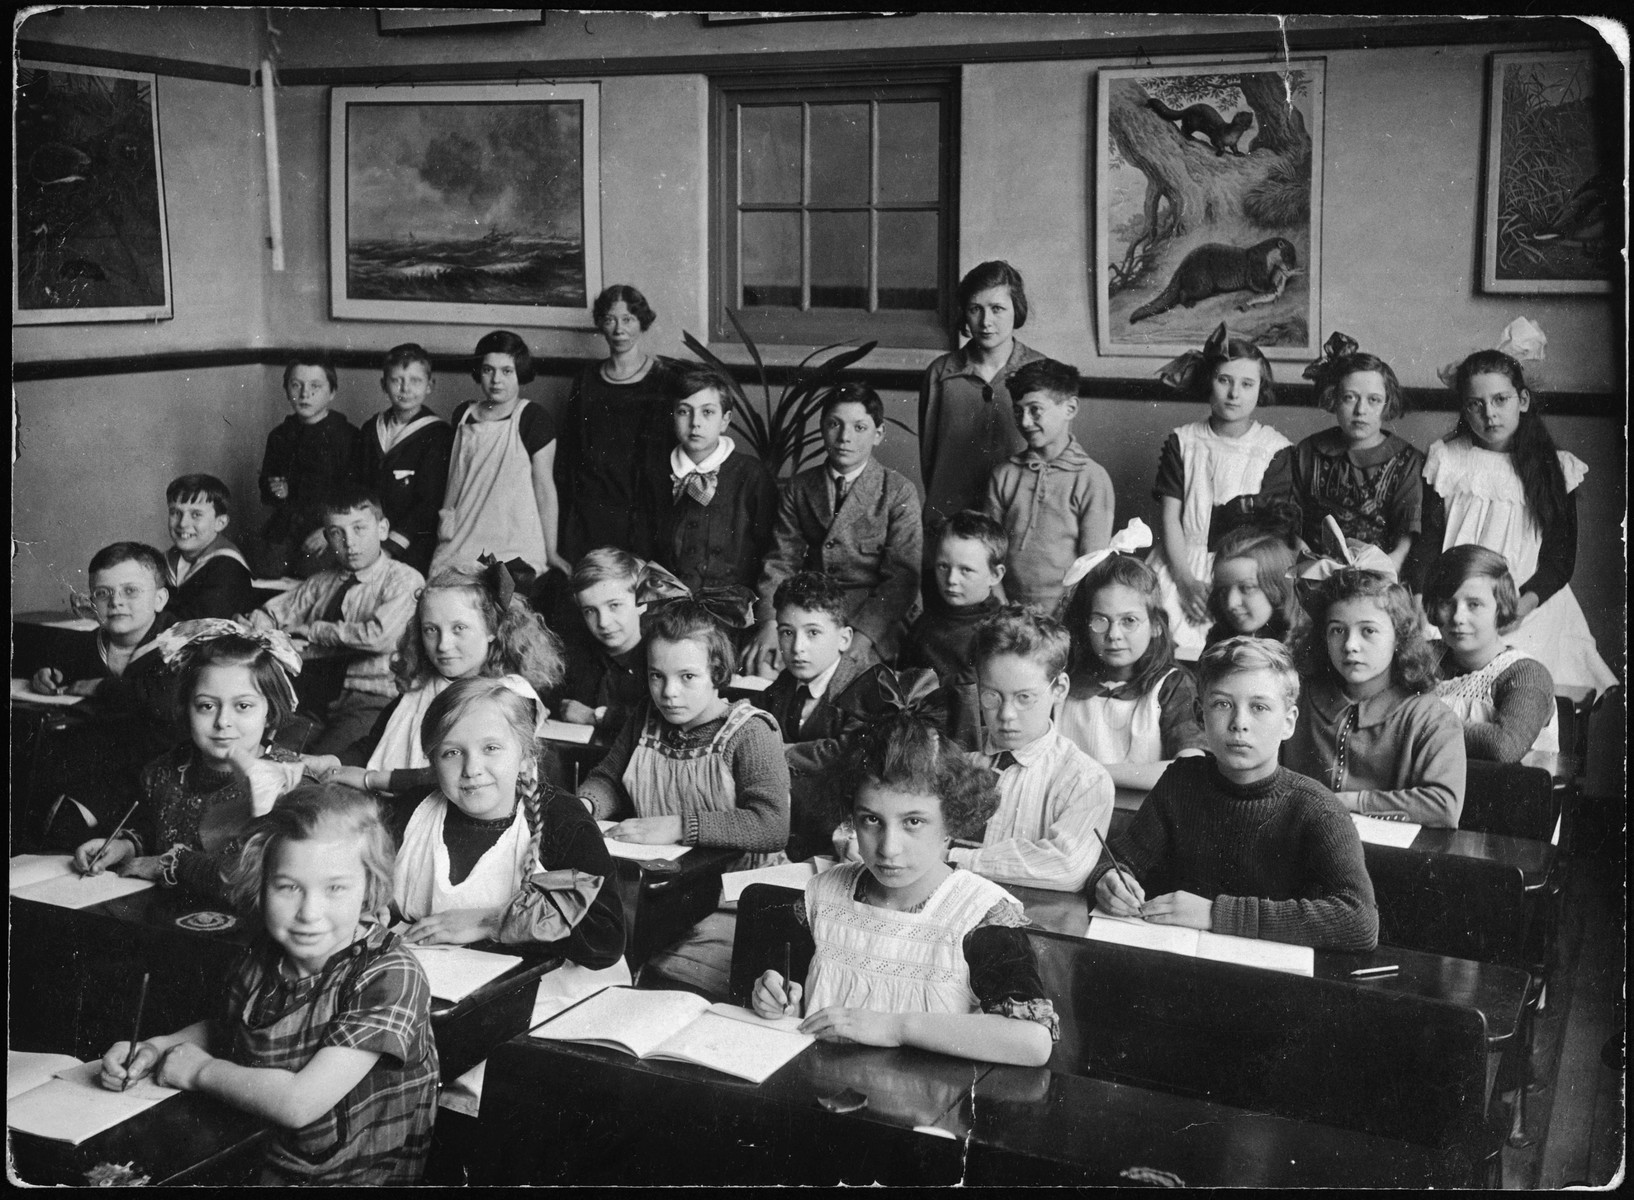 Group portrait of young children and teachers in a class in Amsterdam.  Among those pictured is Ru Rudelsheim.